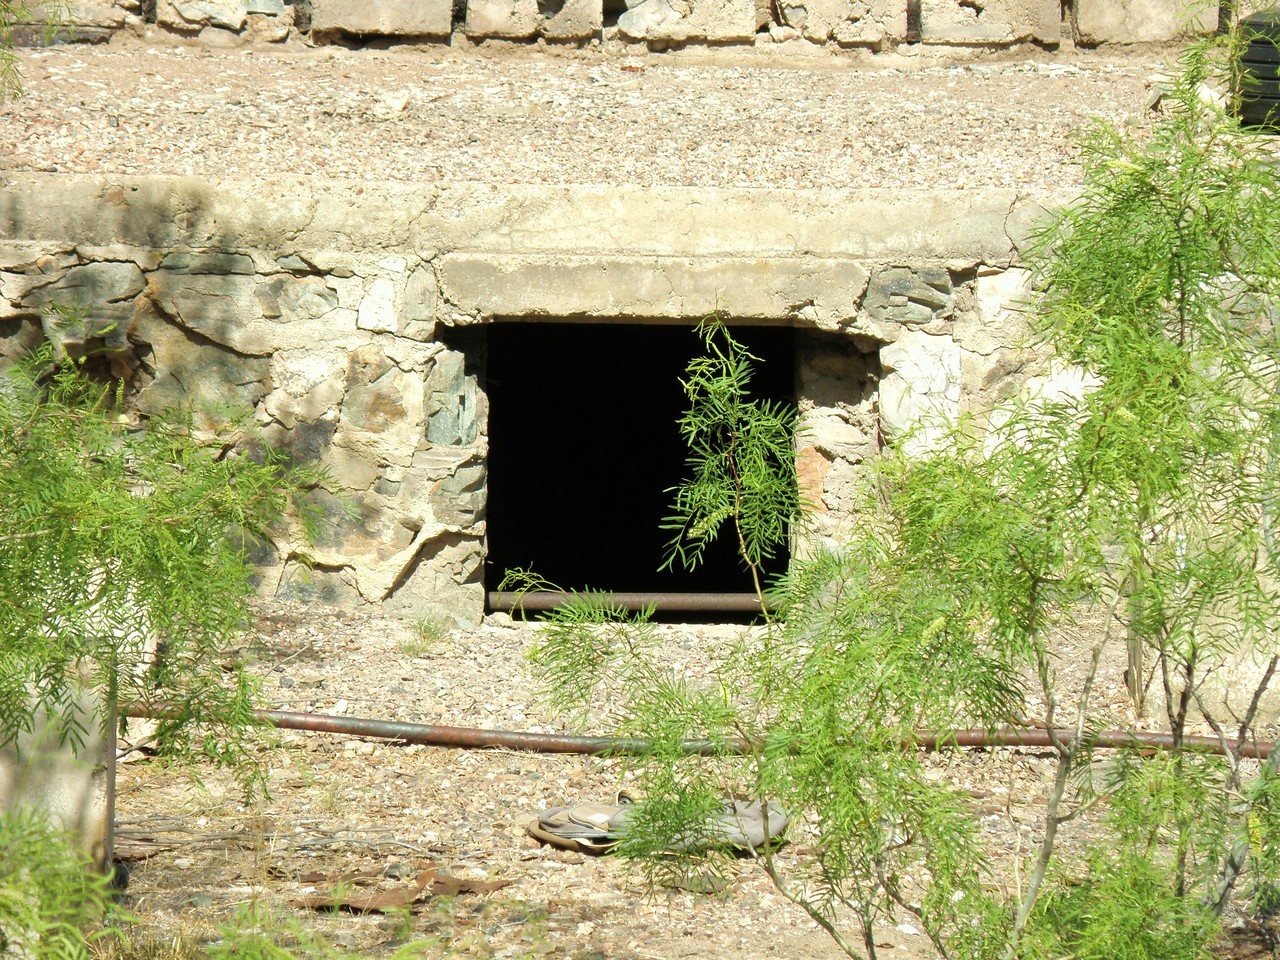 The Window to the Utility Room and Crawl Spaces